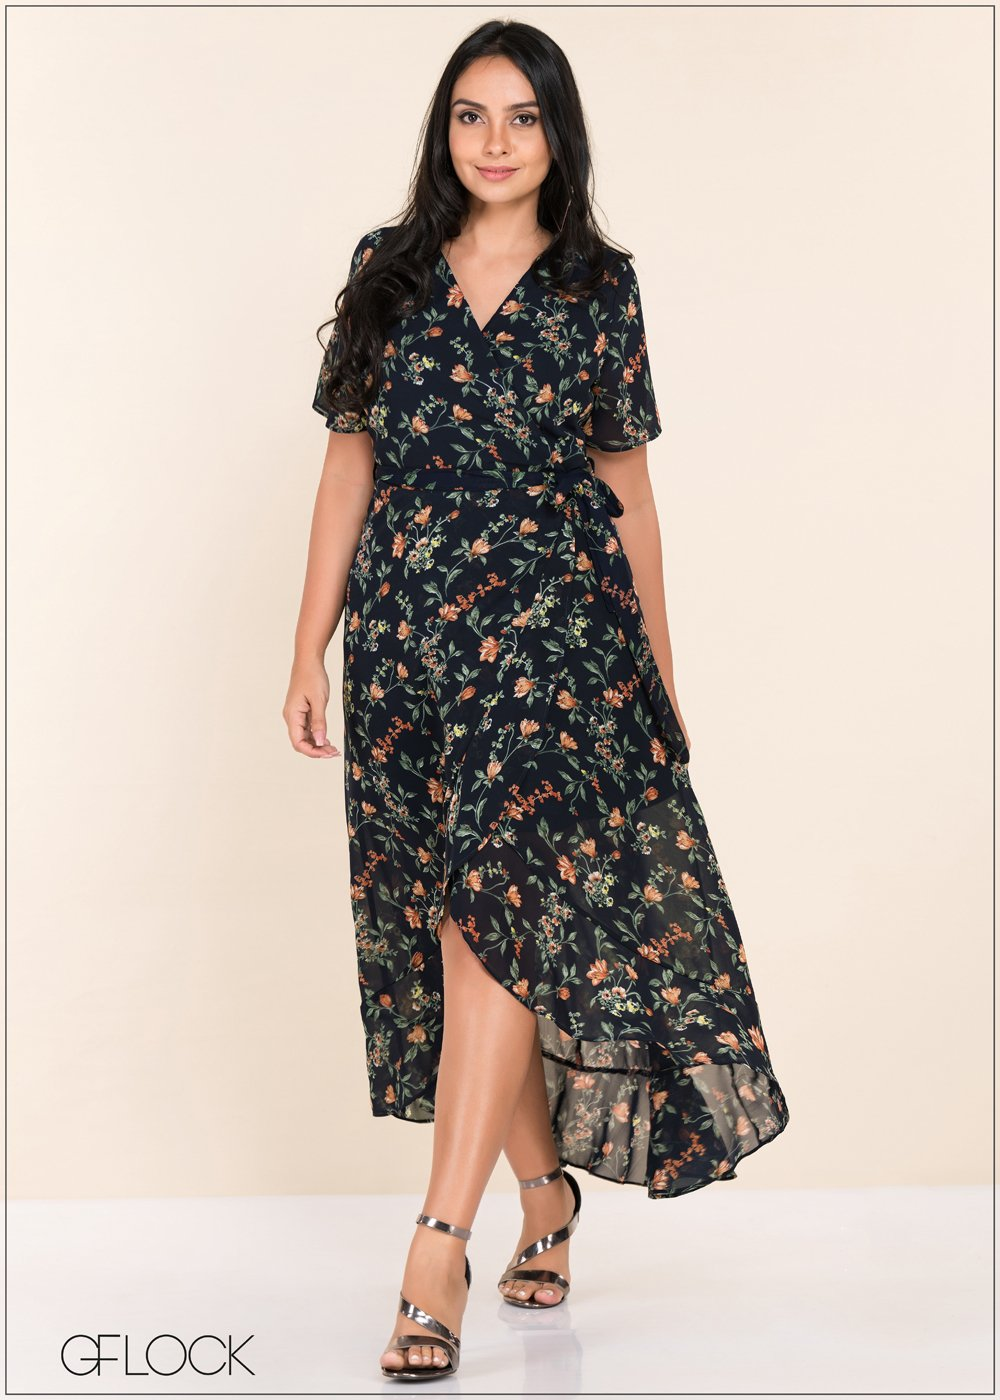 GFLOCK - [product_sku] - Women_Dresses - High Low Wrap Dress